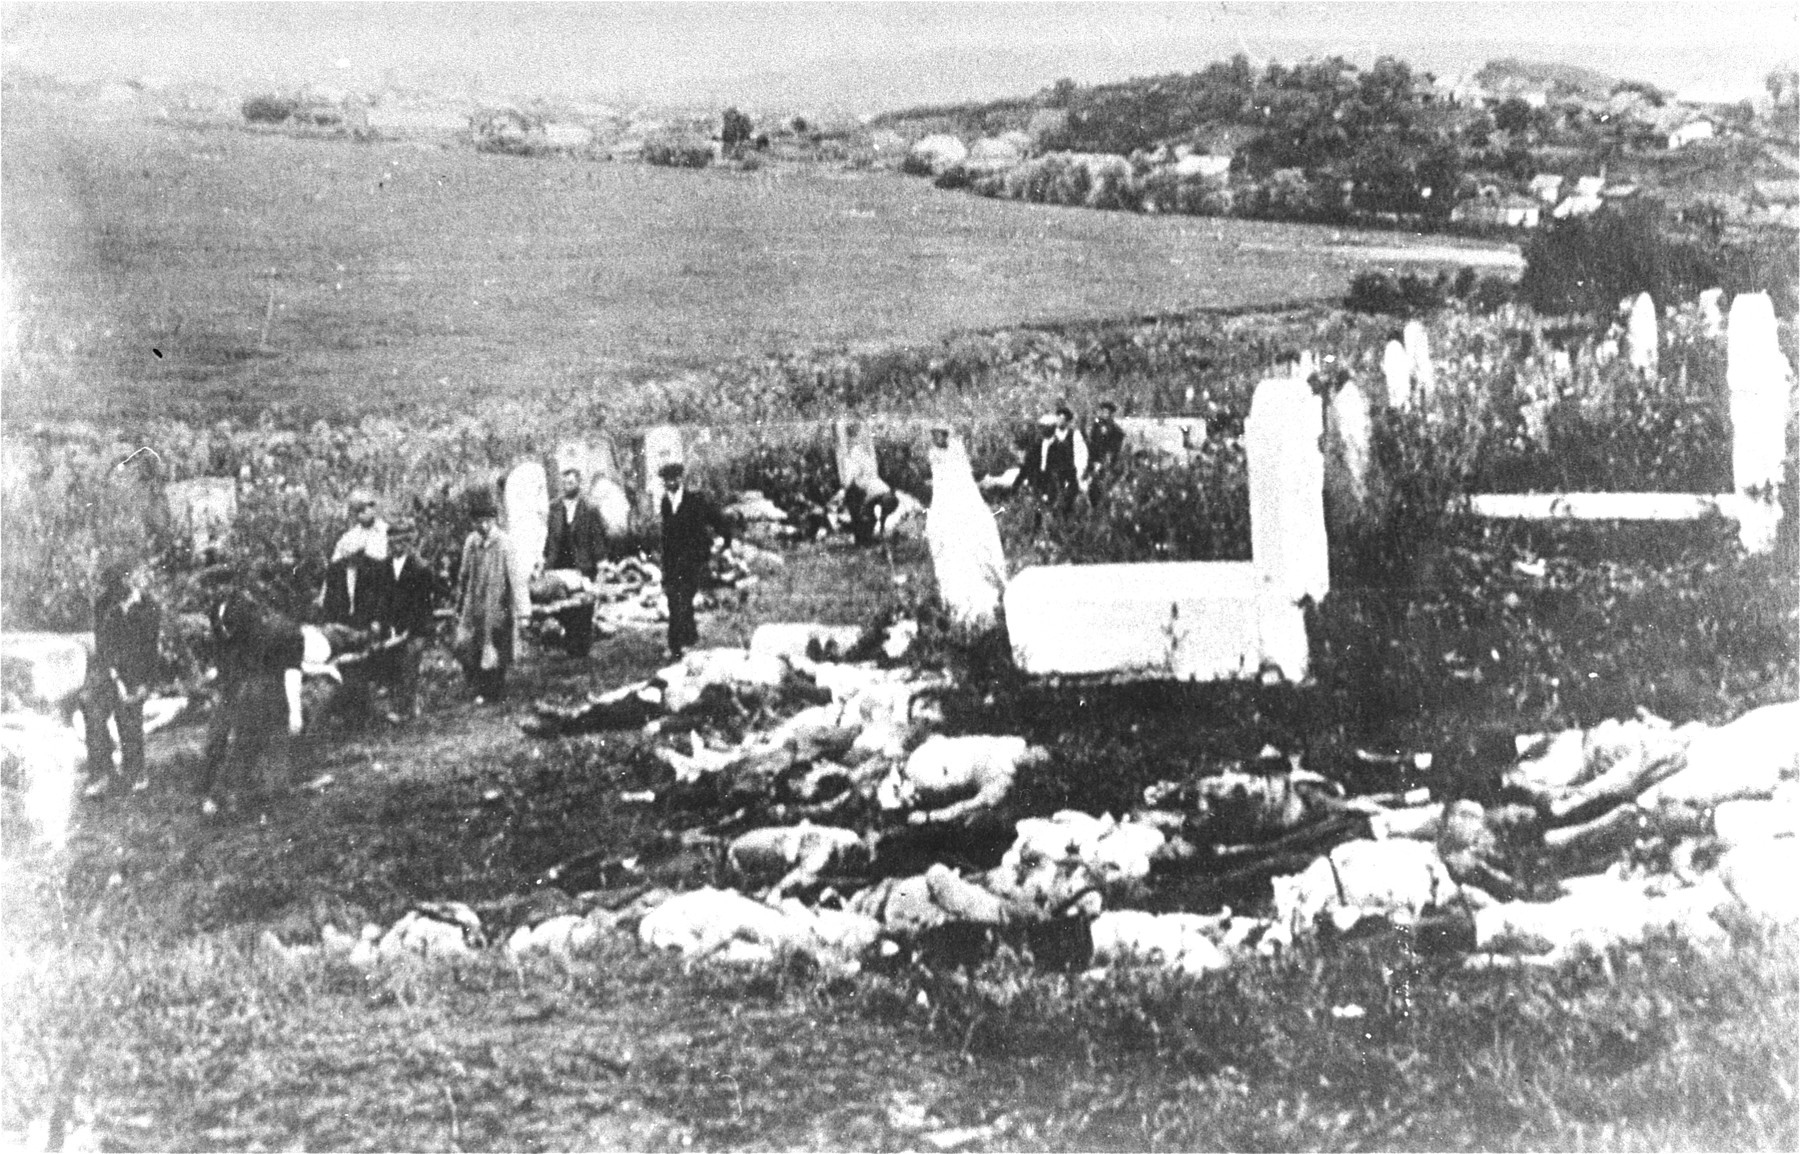 Romanian civilians transport the corpses of Jews removed from the Iasi death train to a local cemetery for burial.